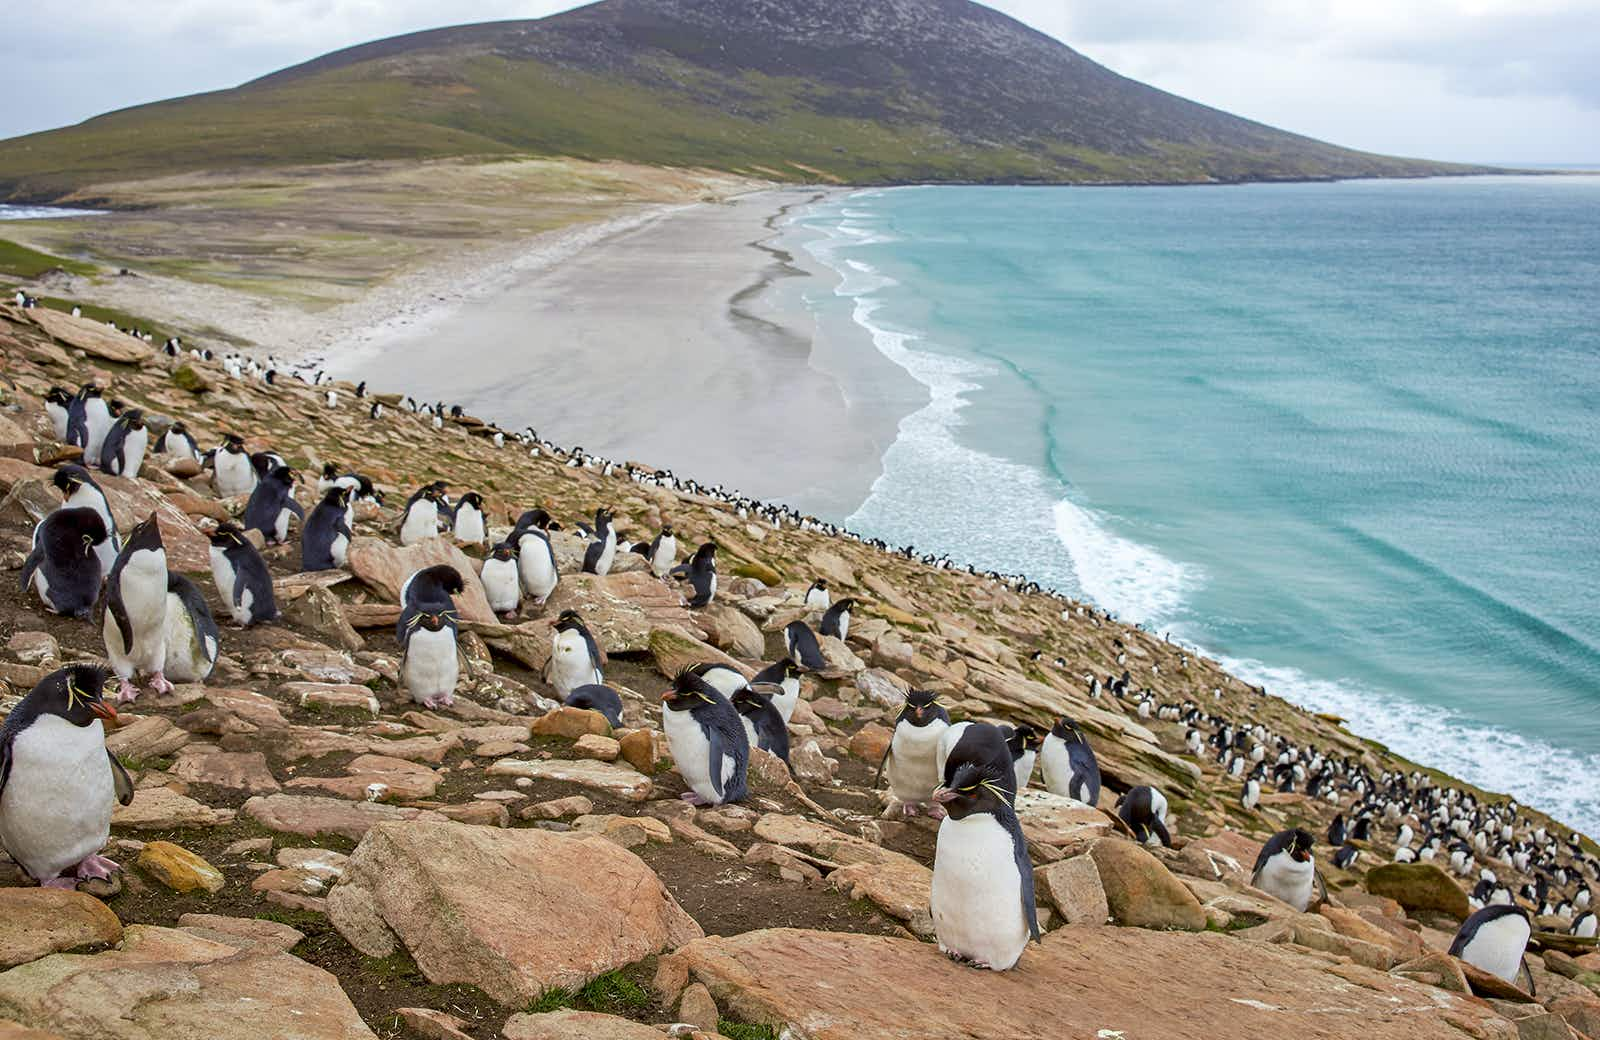 An essential guide to the Falkland Islands